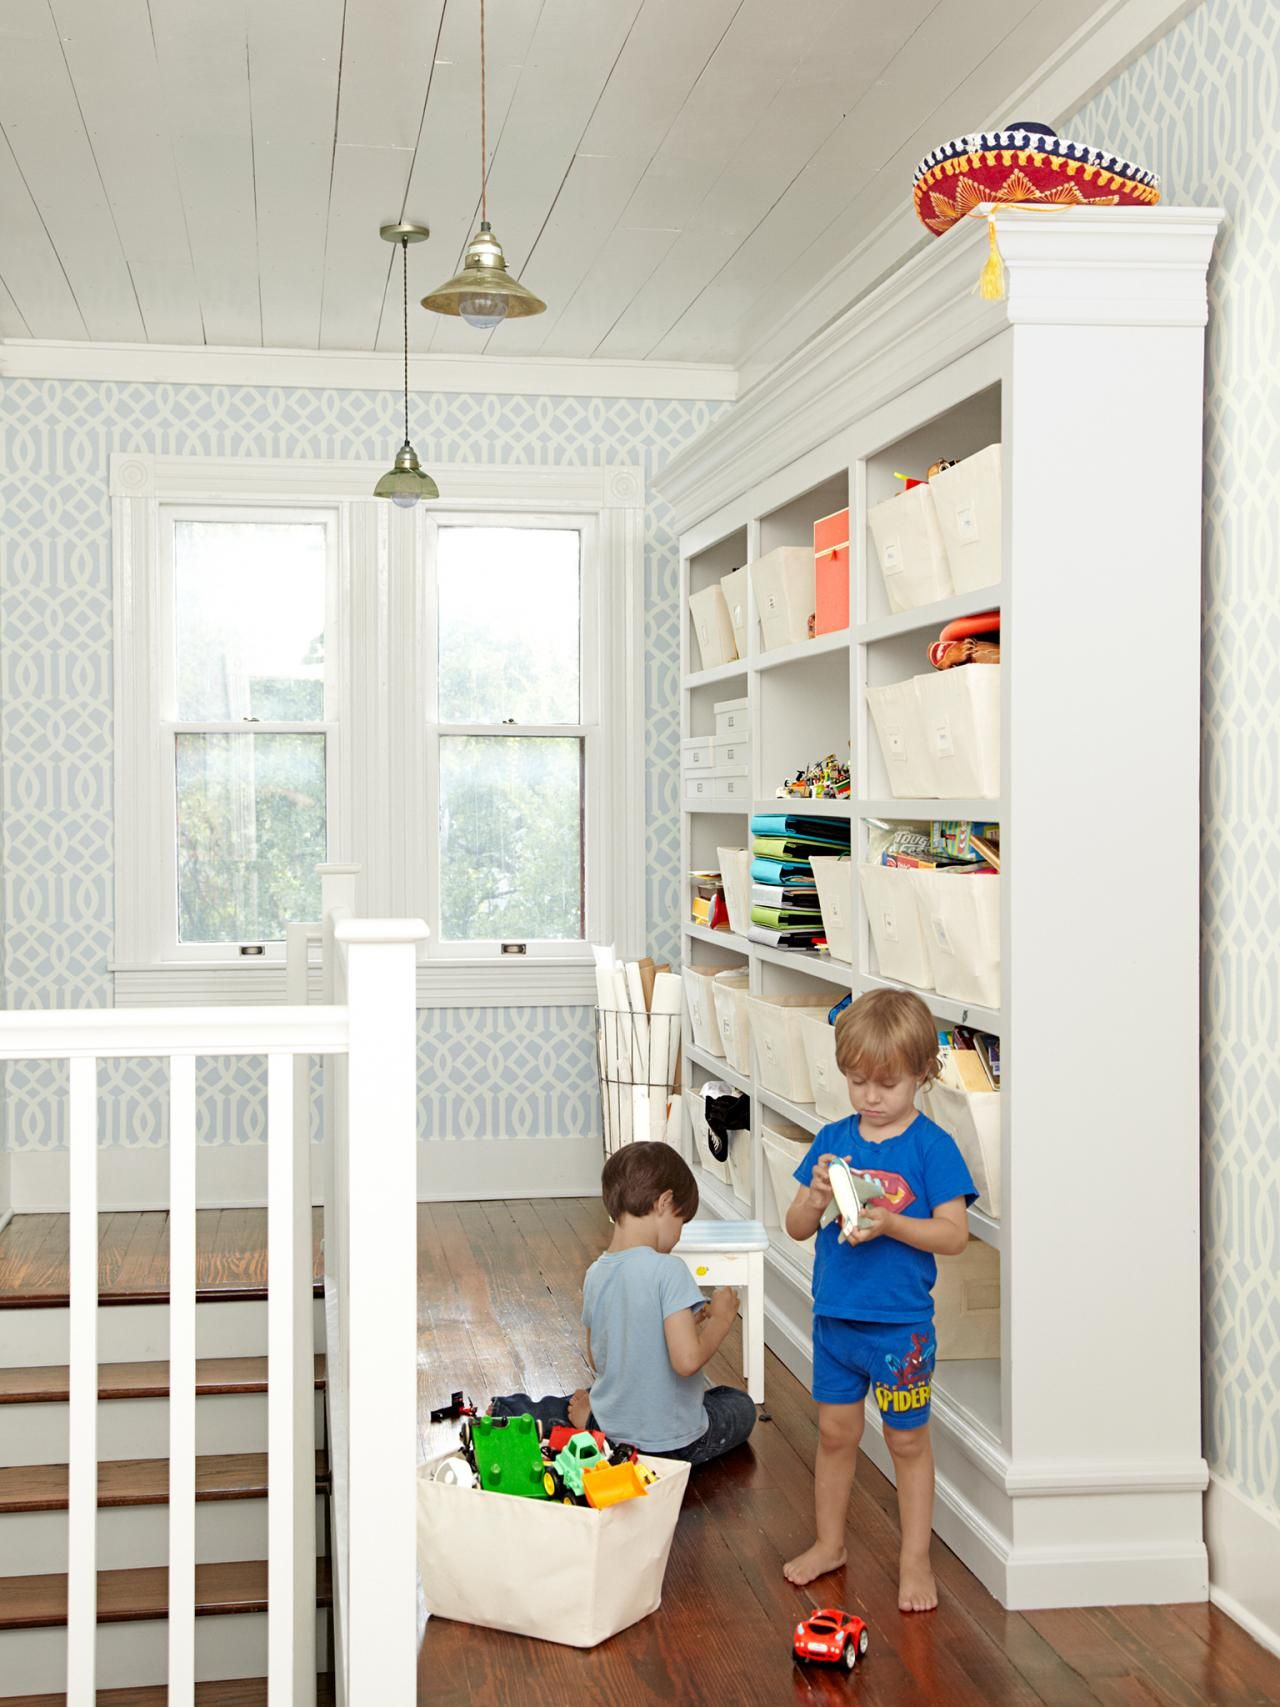 Creative New Decorating Ideas | Pinterest | Container store, Hgtv ...